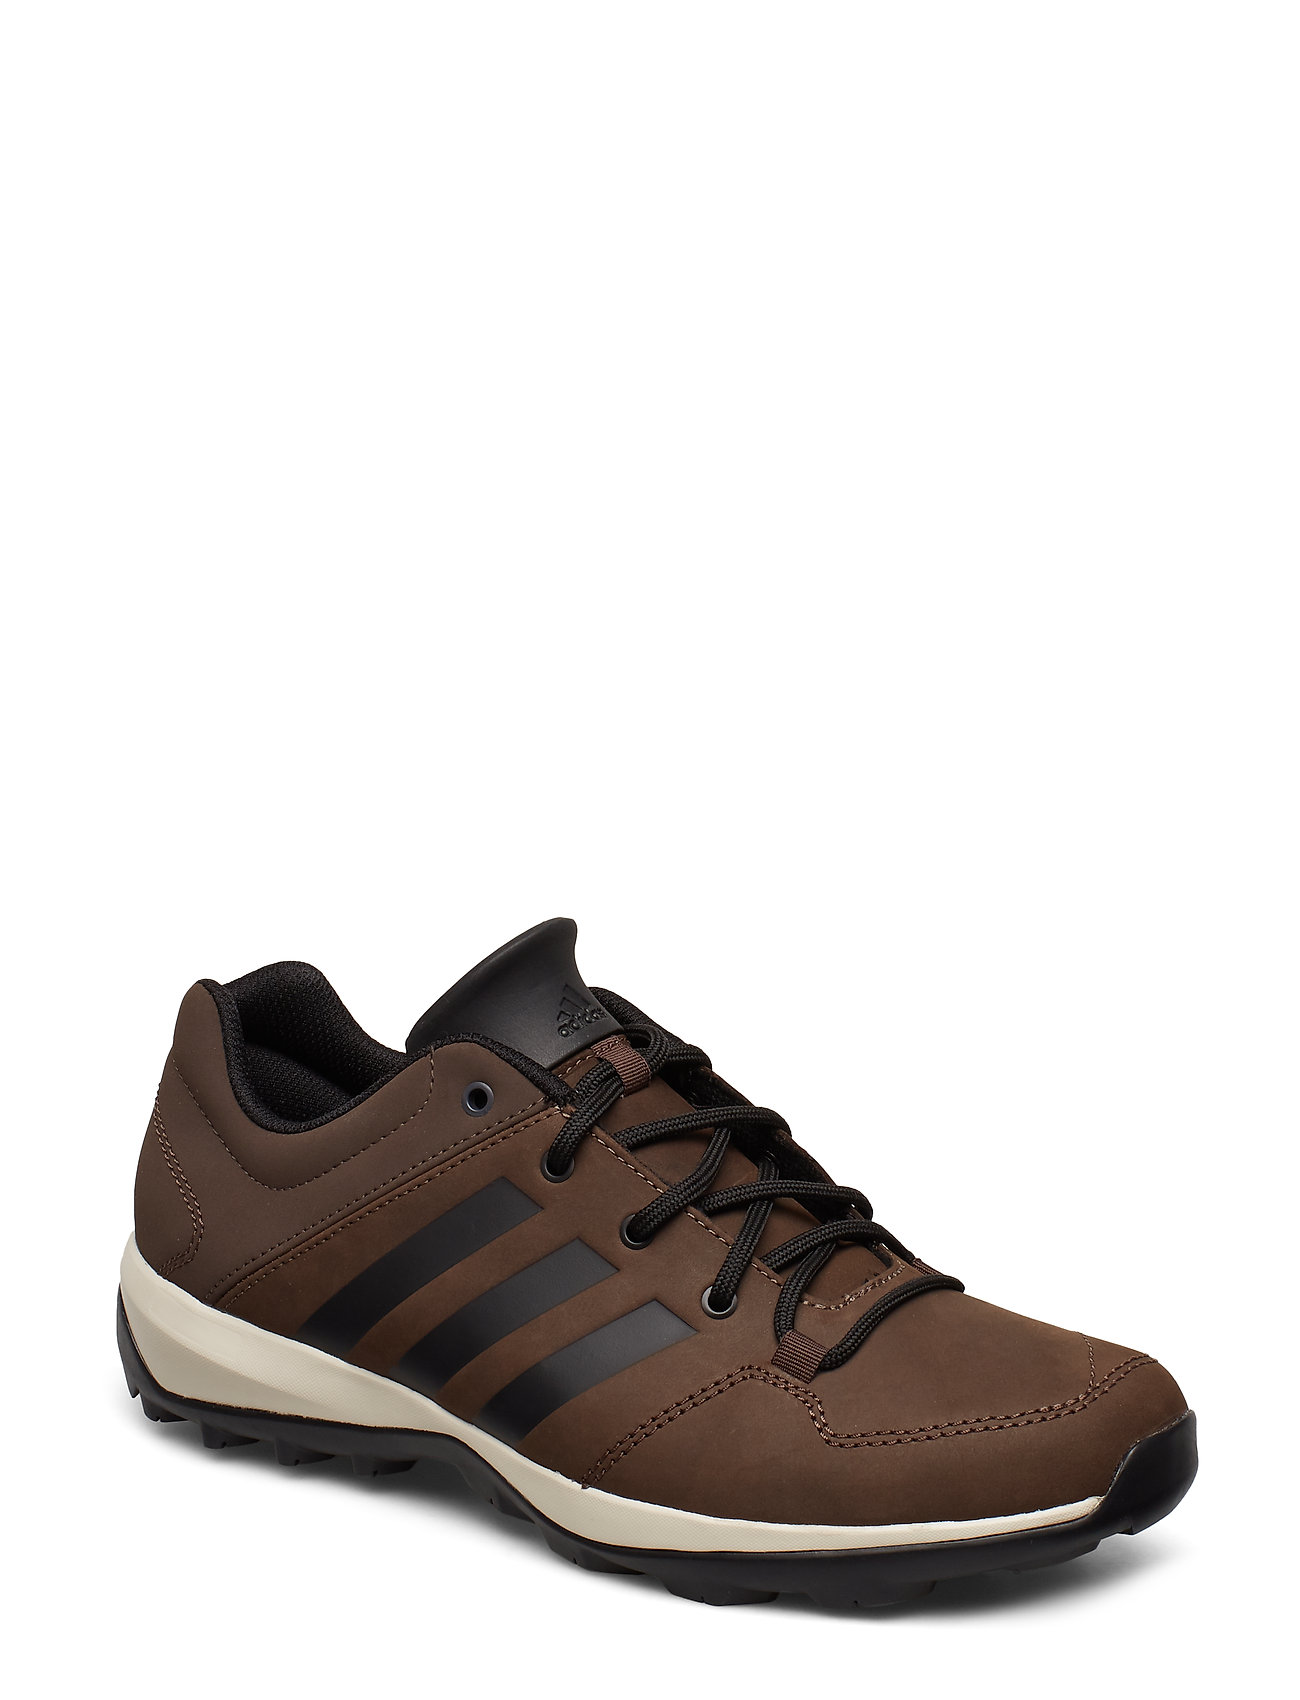 ADIDAS Sneaker | Daroga Plus Lea Shoes Sport Shoes Training Shoes- Golf/tennis/fitness Braun ADIDAS PERFORMANCE